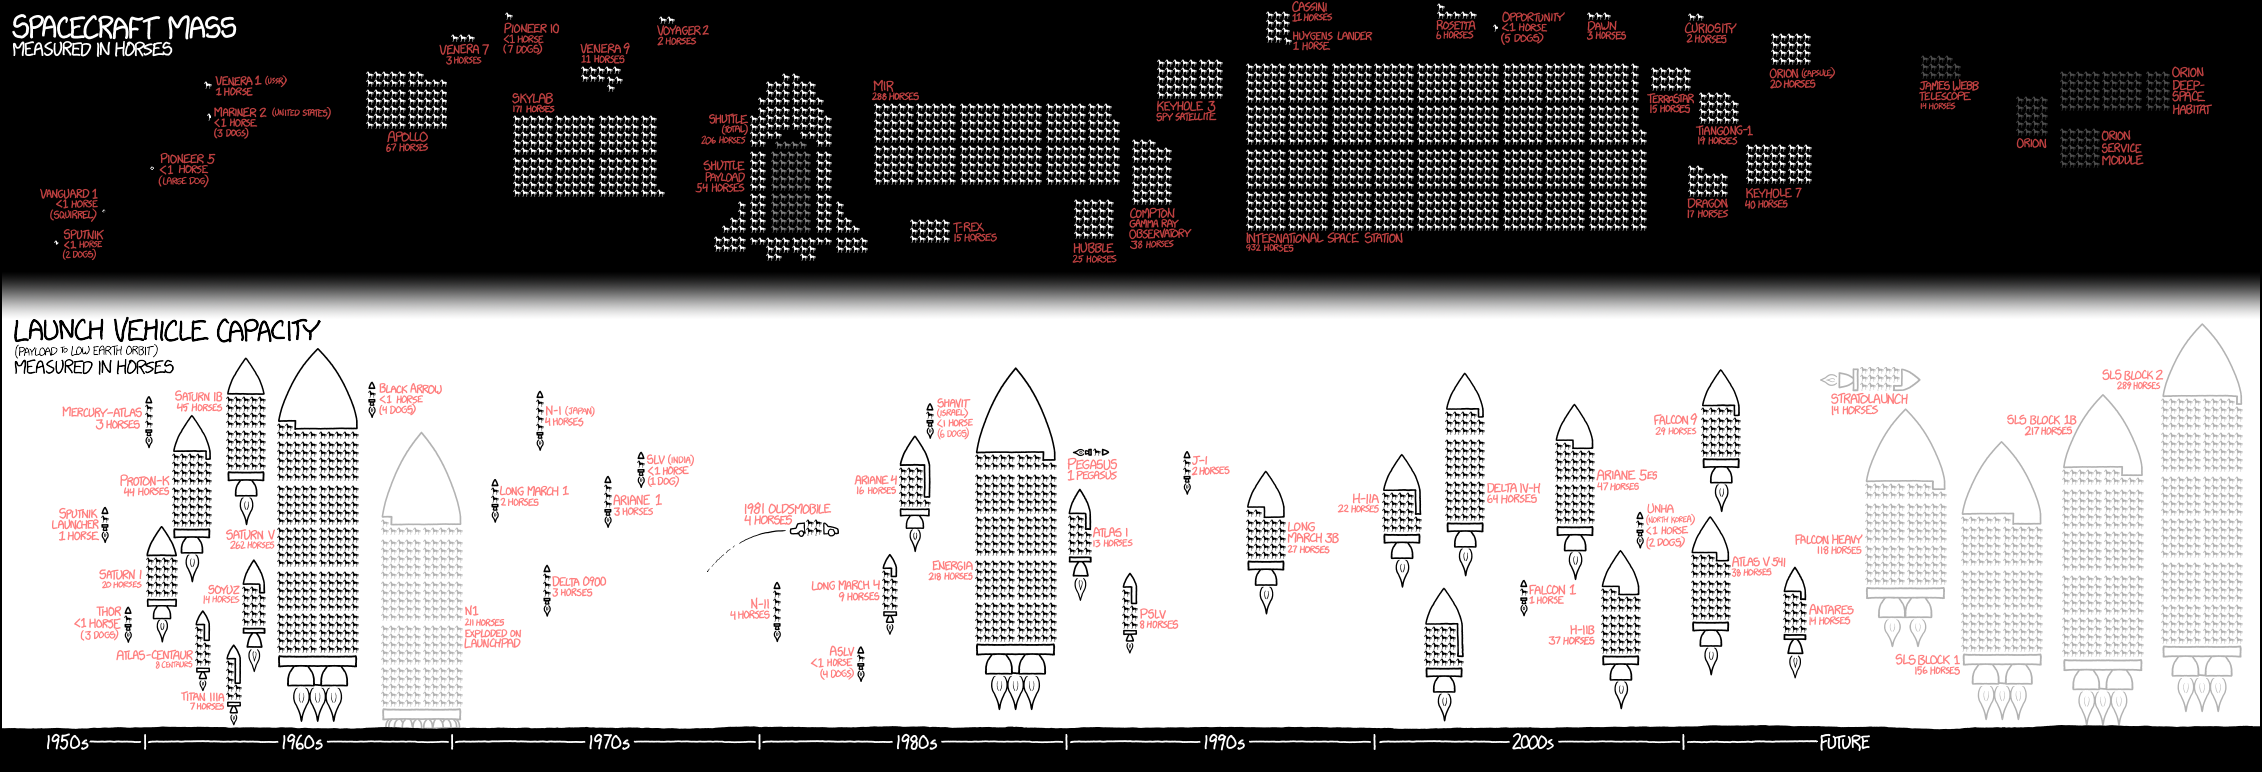 Spacecrafts mass & Launch Vehicle capacity (payload to low earth orbit) measured in horses